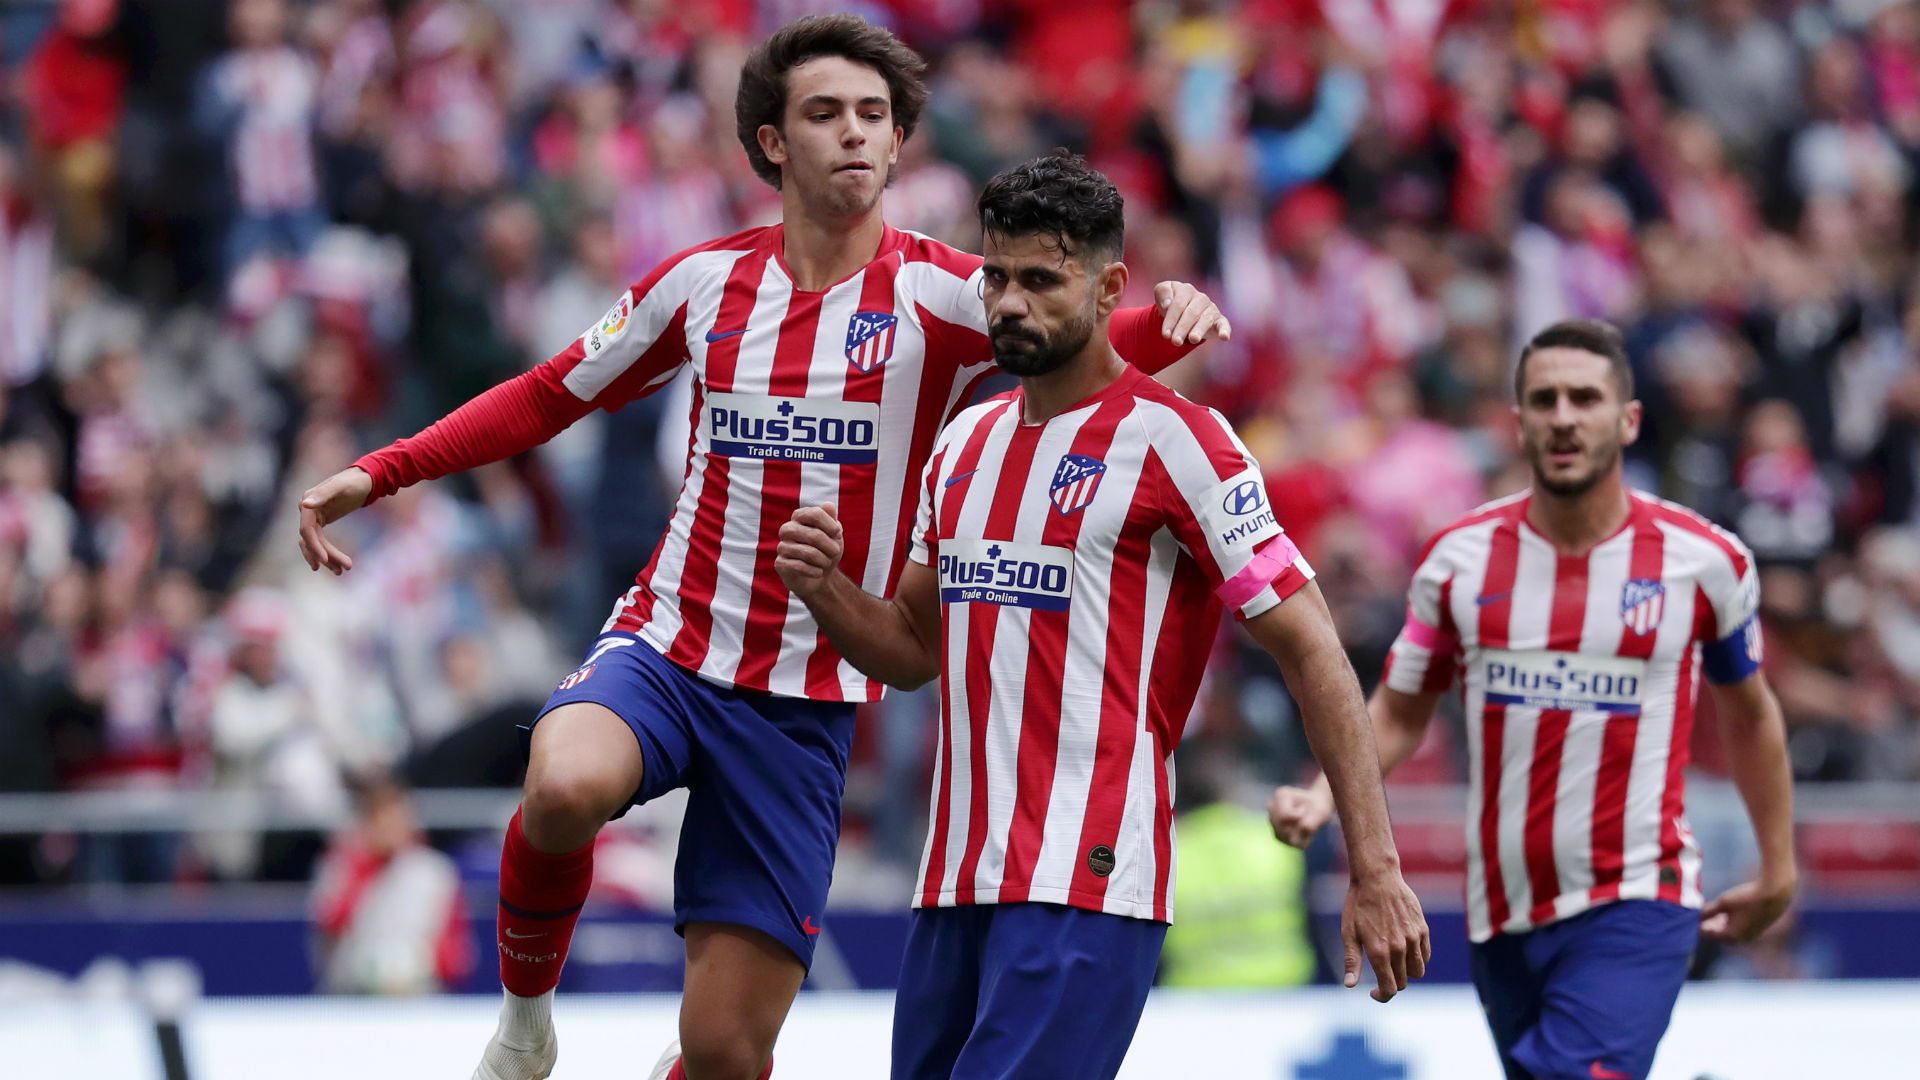 Joao Felix fit again as Atleti and Simeone face up to Costa absence